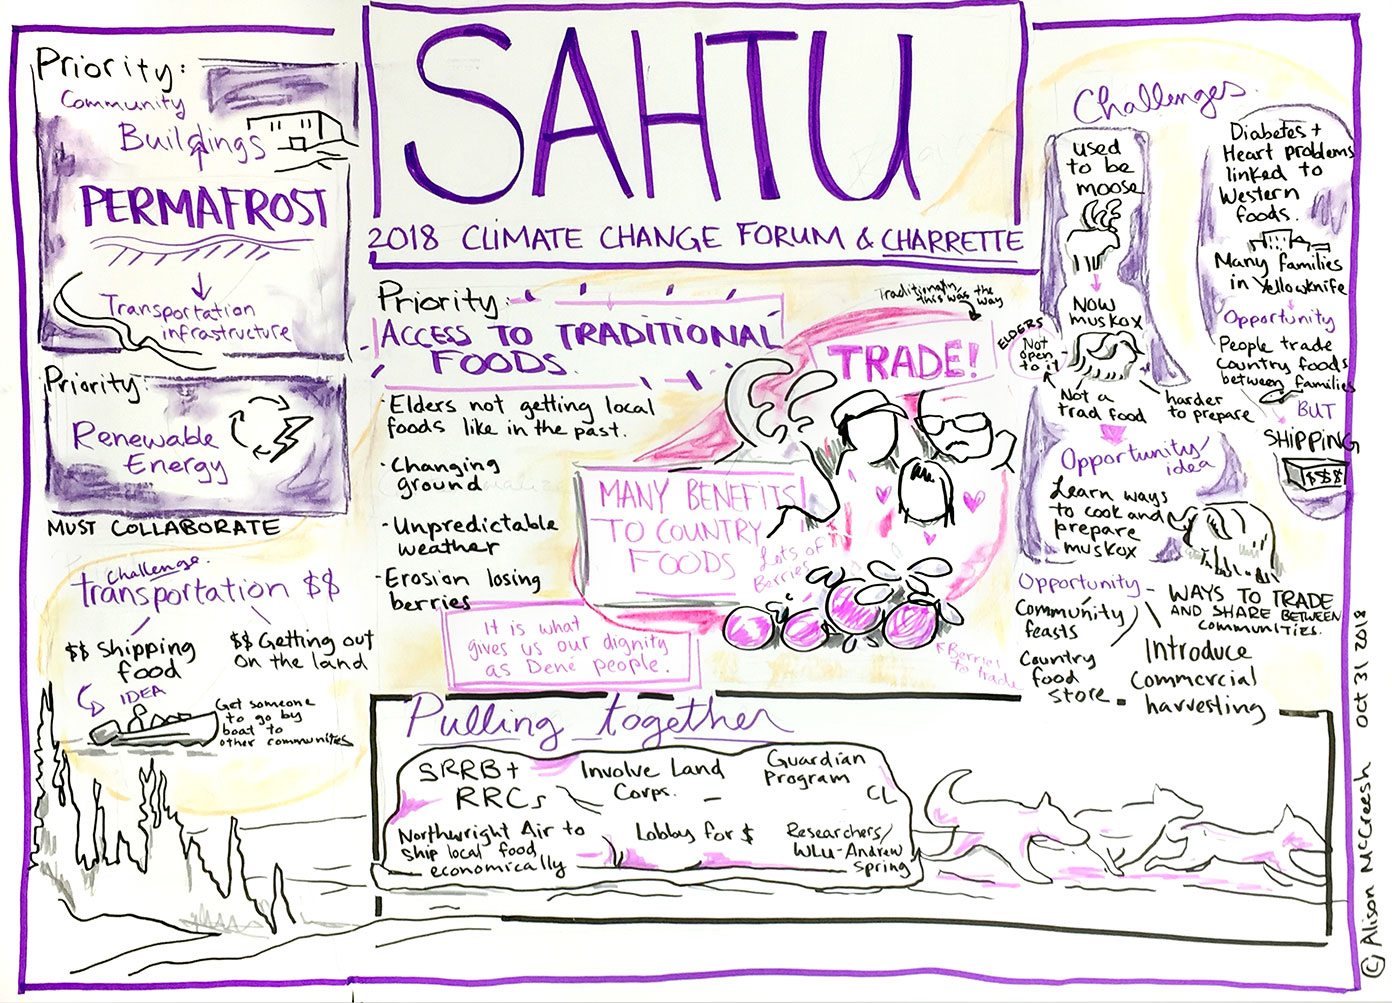 Charrette depicting the Sahtu Region's climate priorities. Credit: Alison McCreesh